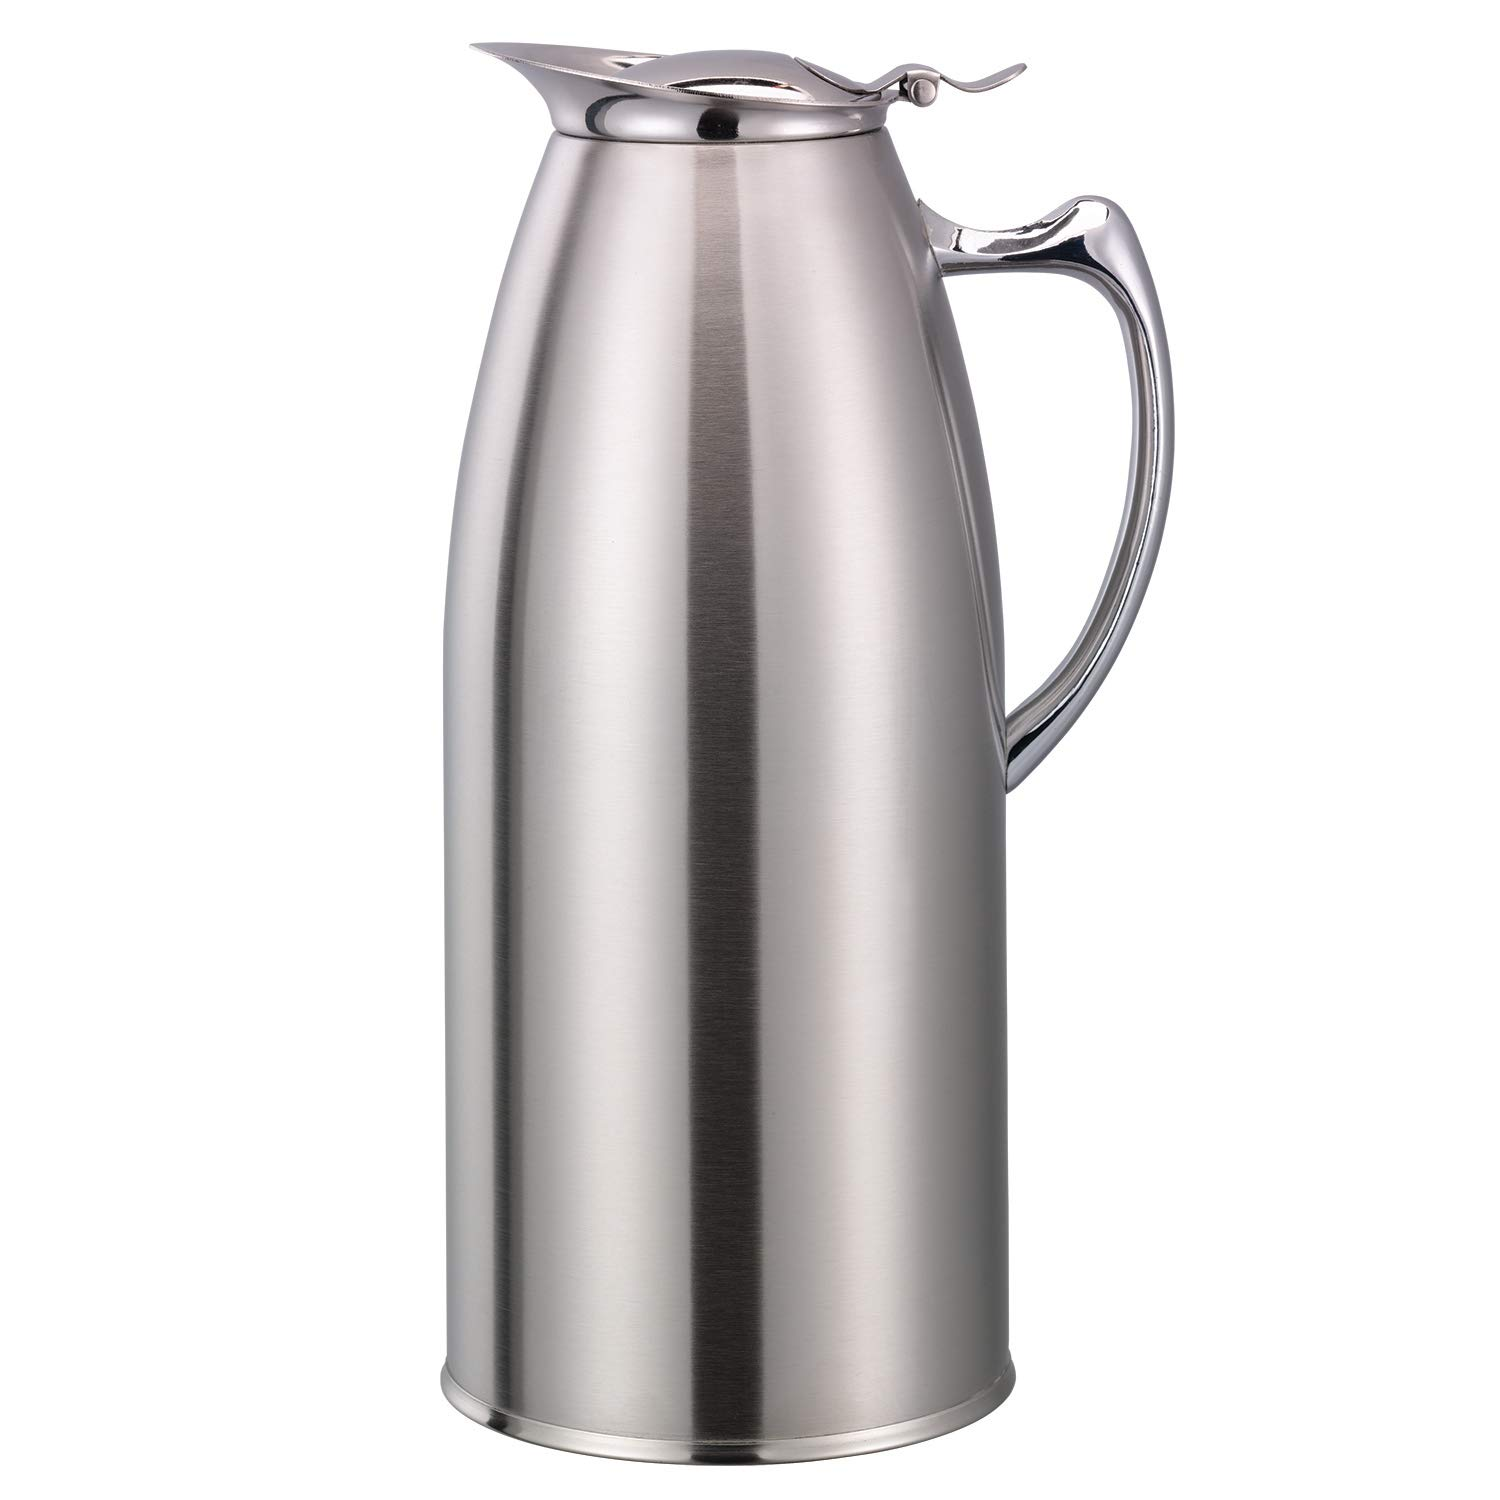 Service Ideas WP15SA Water Pitcher, Stainless Steel, Satin, 1.5L